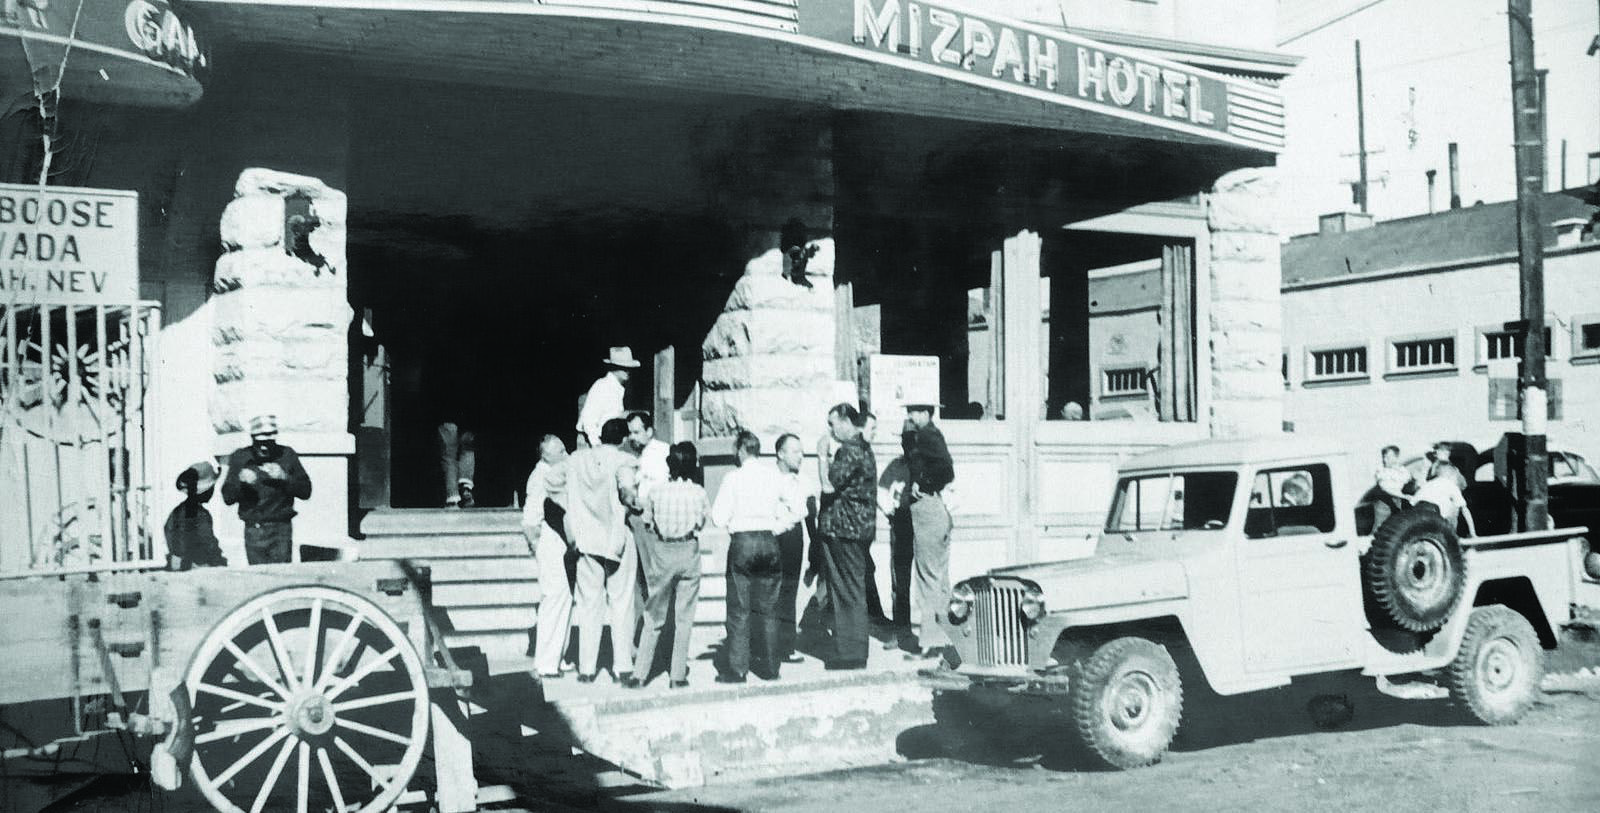 Image of Historic Exterior, Mizpah Hotel in Topah, Nevada, 1907, Member of Historic Hotels of America, Discover